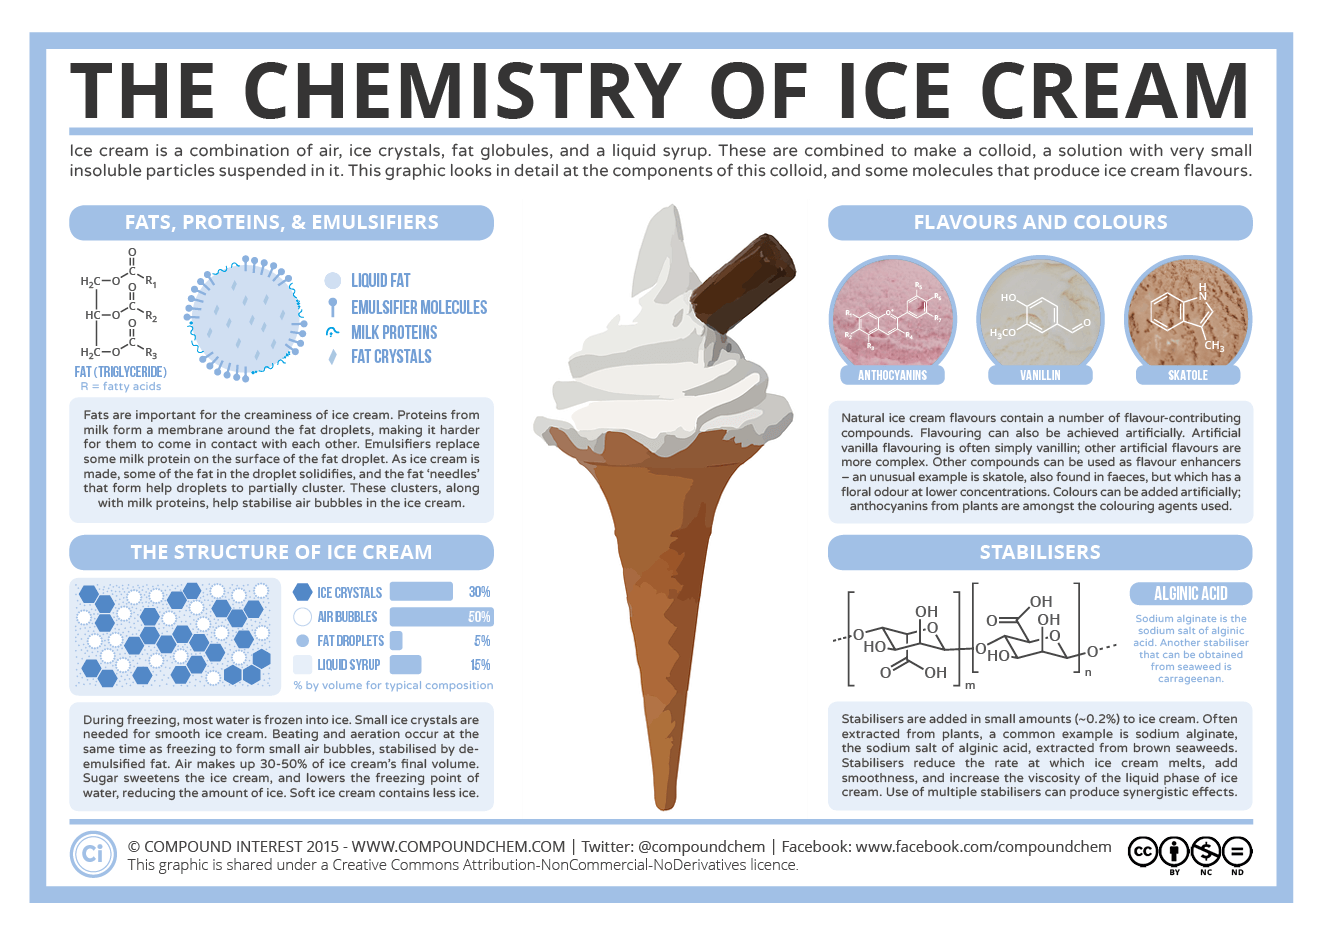 https://i0.wp.com/www.compoundchem.com/wp-content/uploads/2015/07/Ice-Cream-Chemistry.png